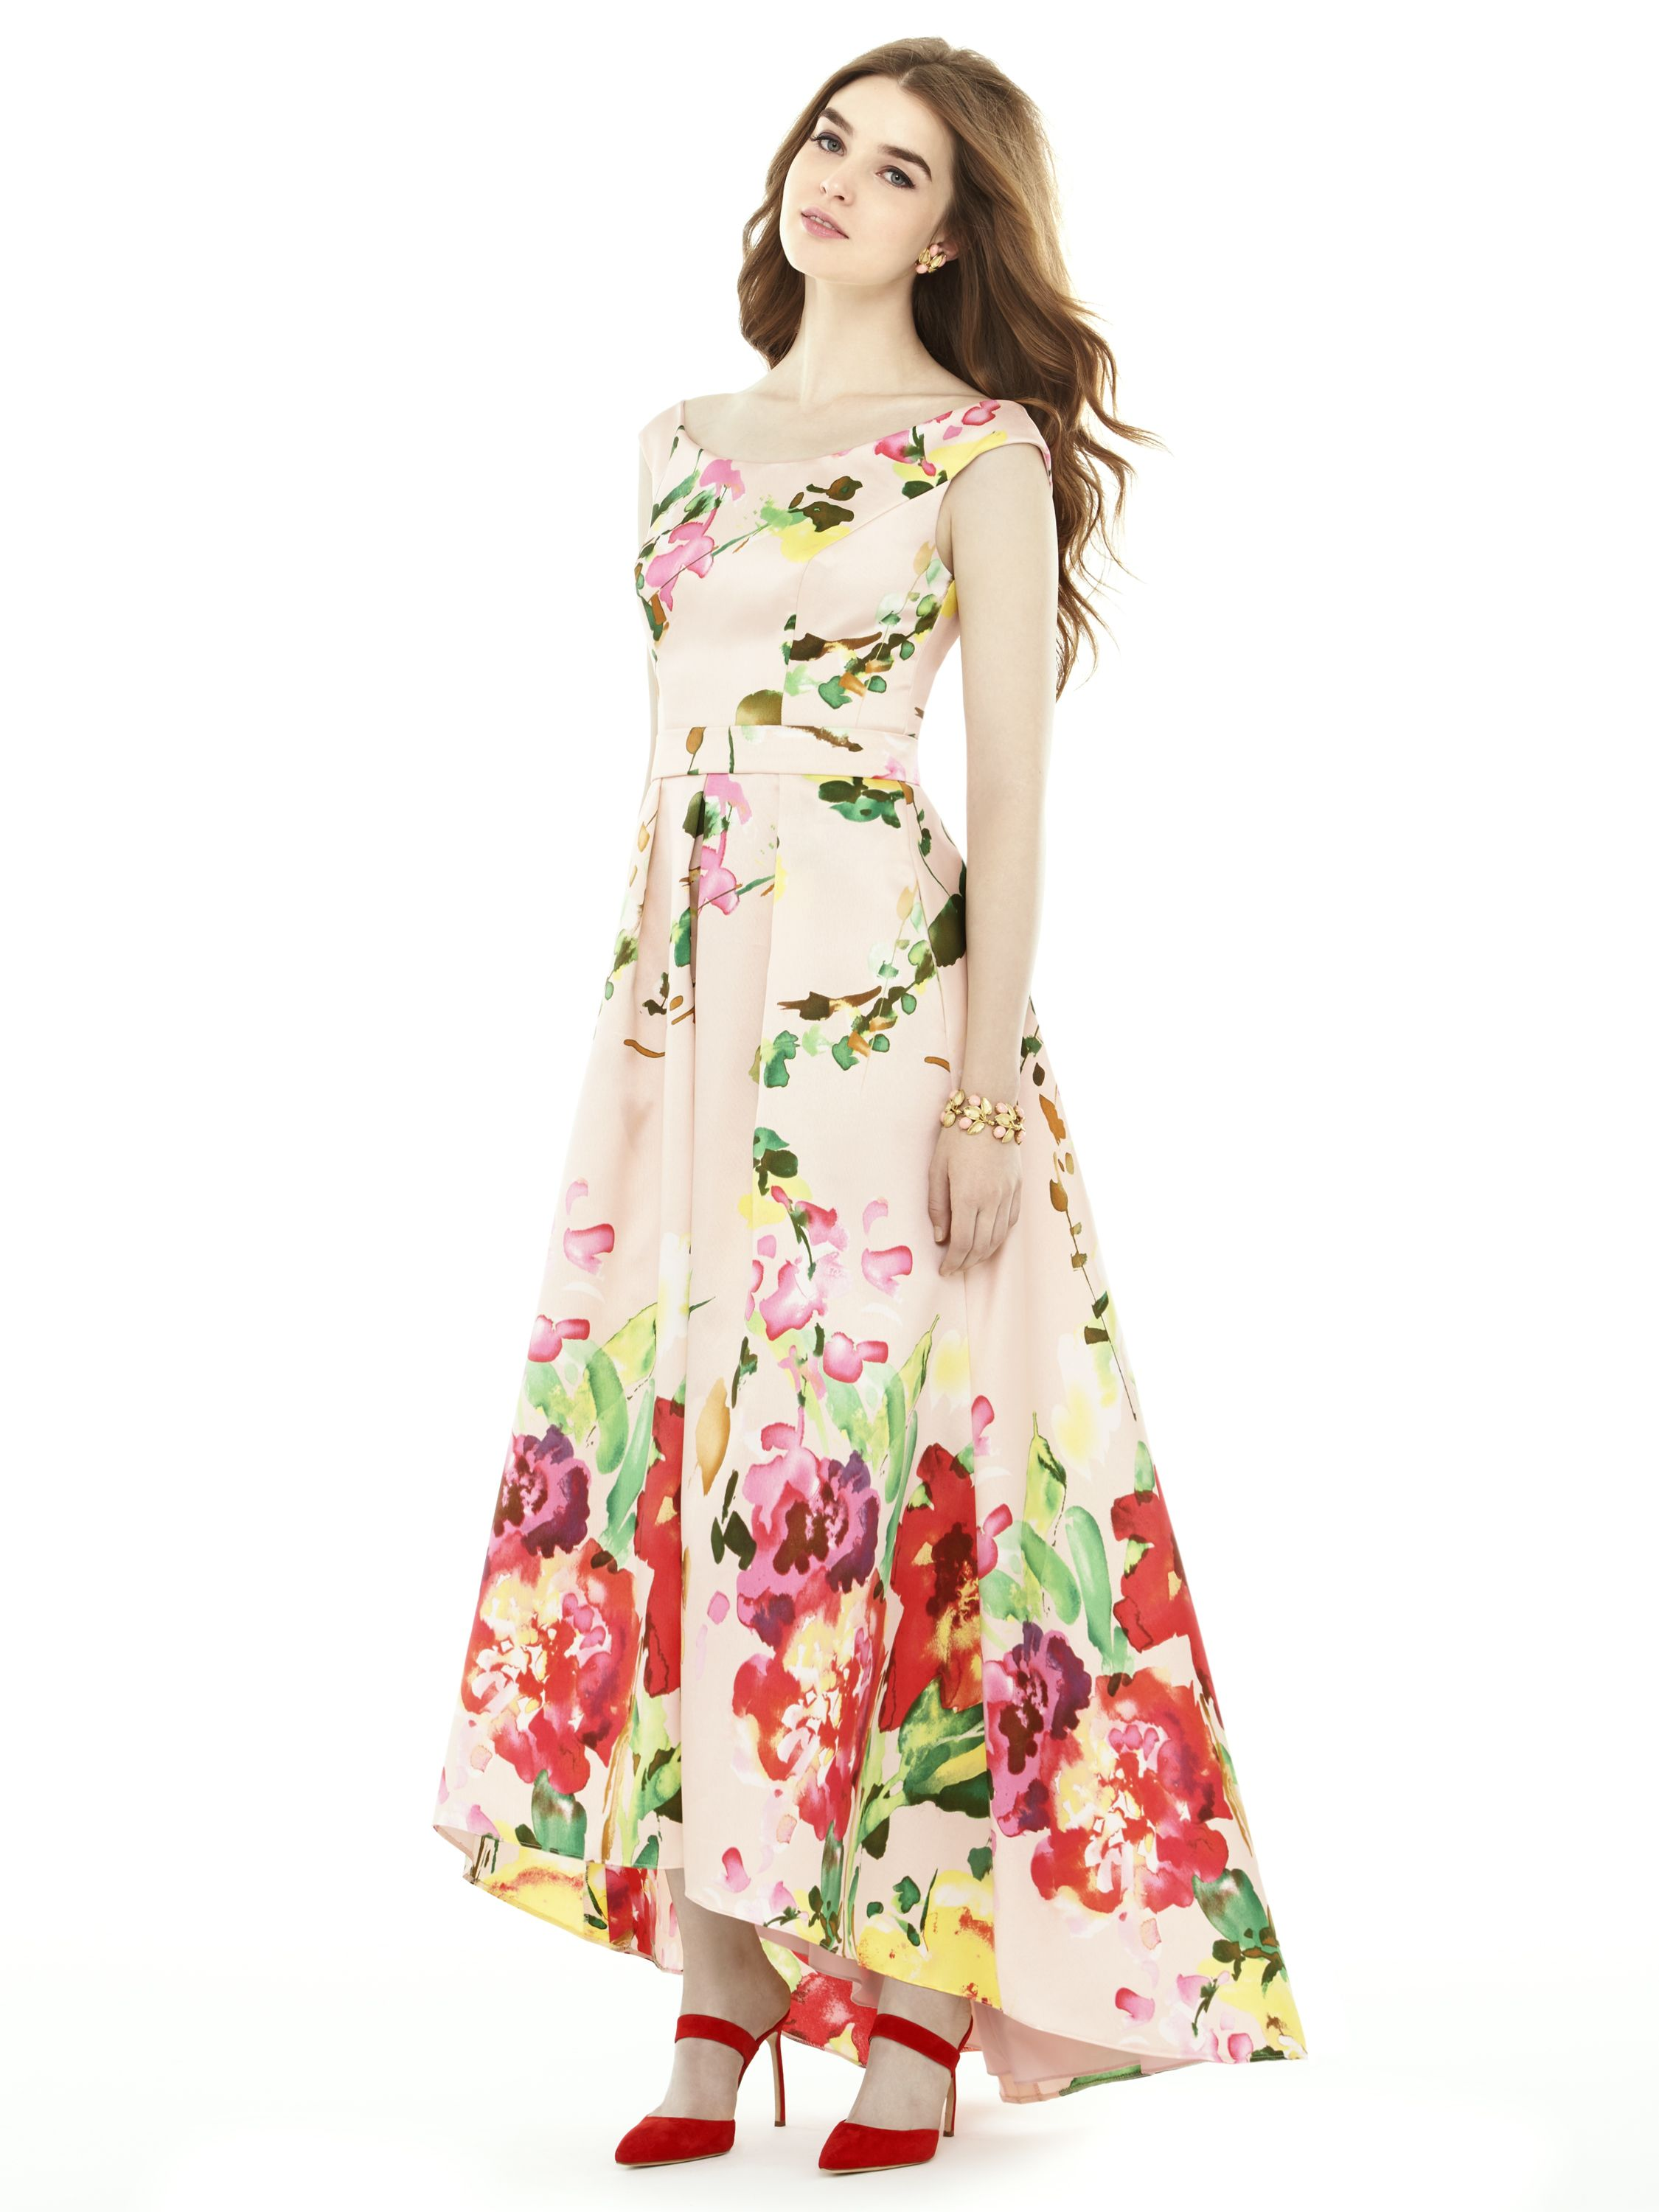 New alfredsung collection style d722fp dessygroup alfred featuring a floral bouquet print pattern this sateen twill alfred sung bridesmaid dress has an off the shoulder neckline and an inset waistband ombrellifo Gallery